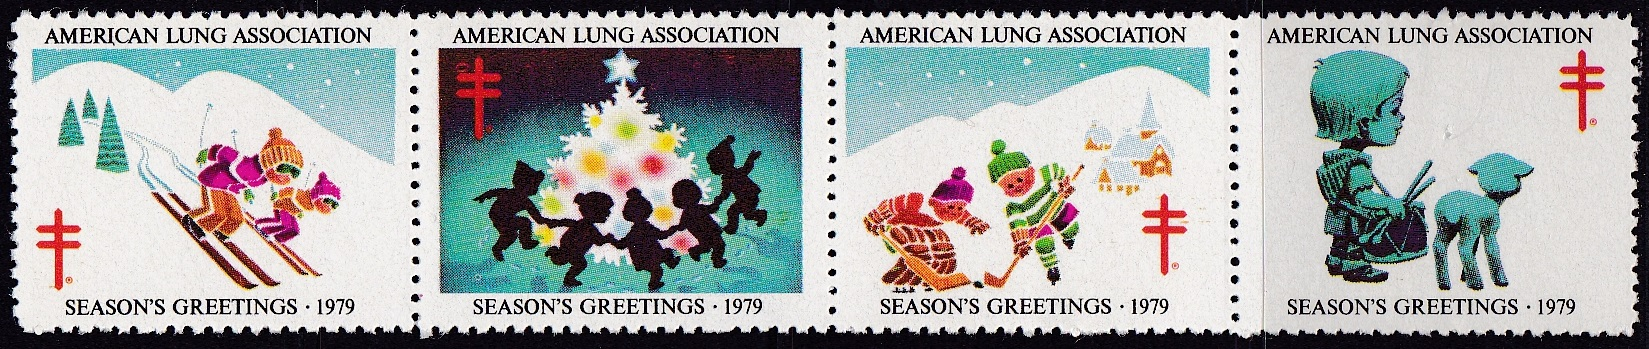 1979 Christmas Seal Design Experiment, Canadian Lookalike